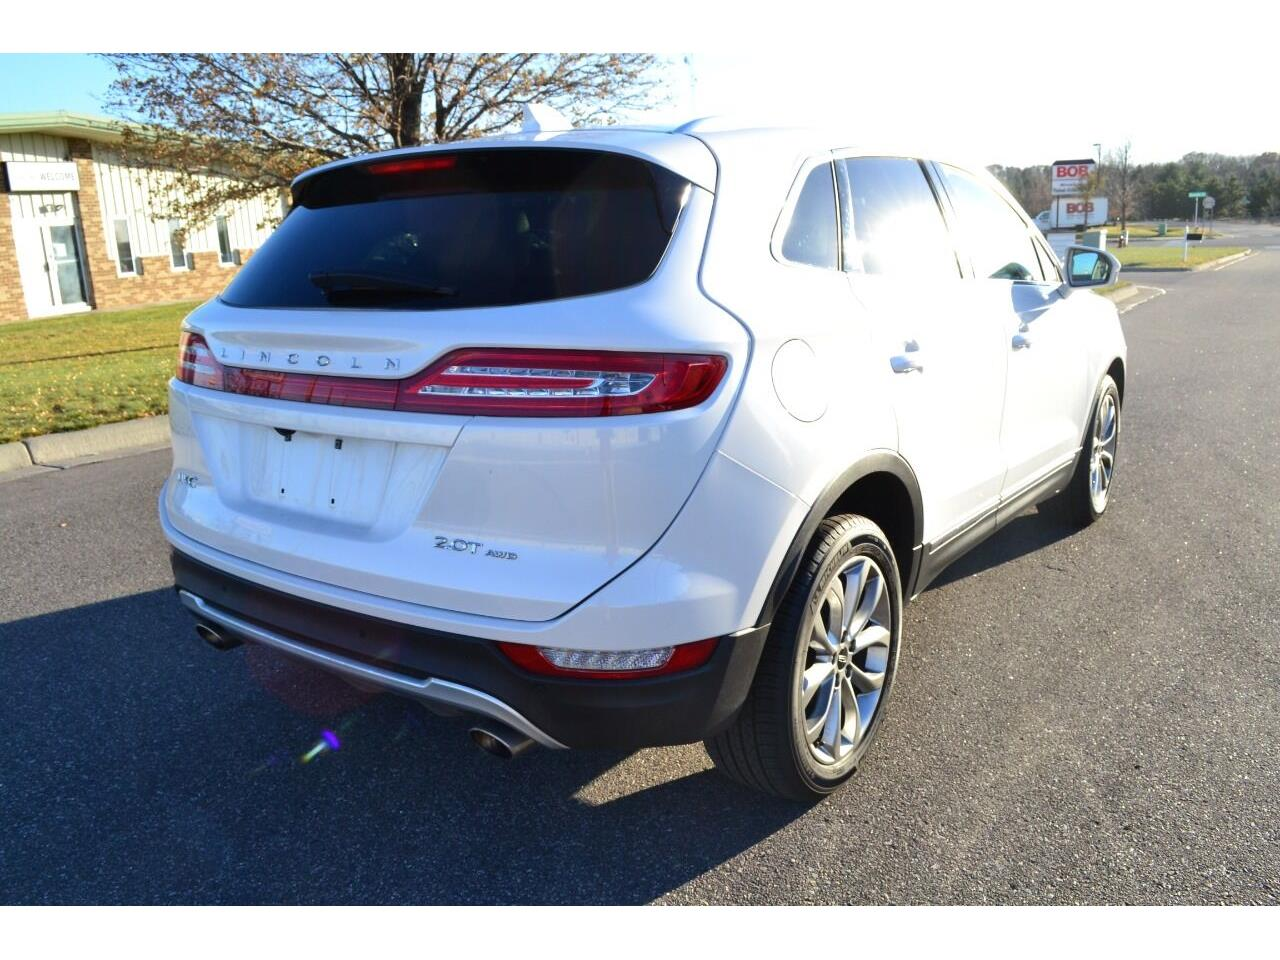 2018 Lincoln MKC (CC-1419662) for sale in Ramsey, Minnesota